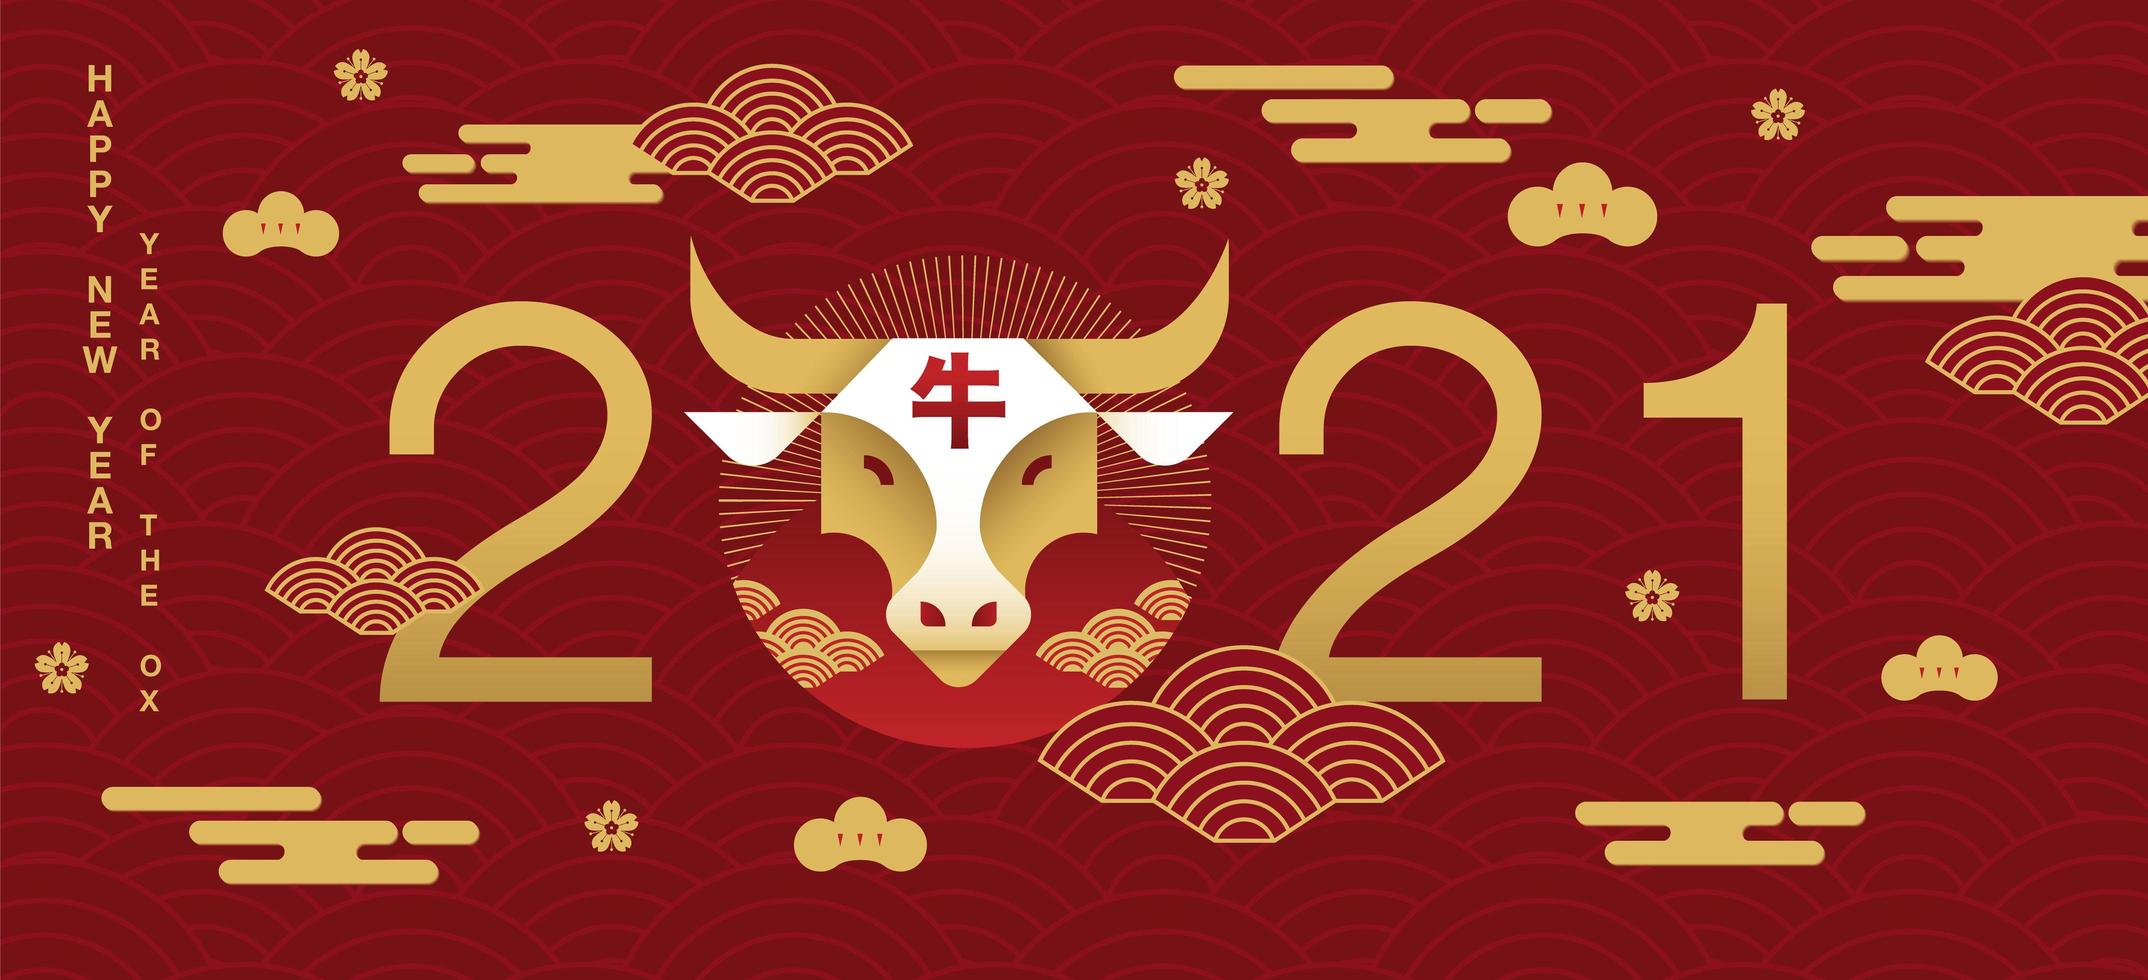 Chinese new year 2021 red and gold banner vector